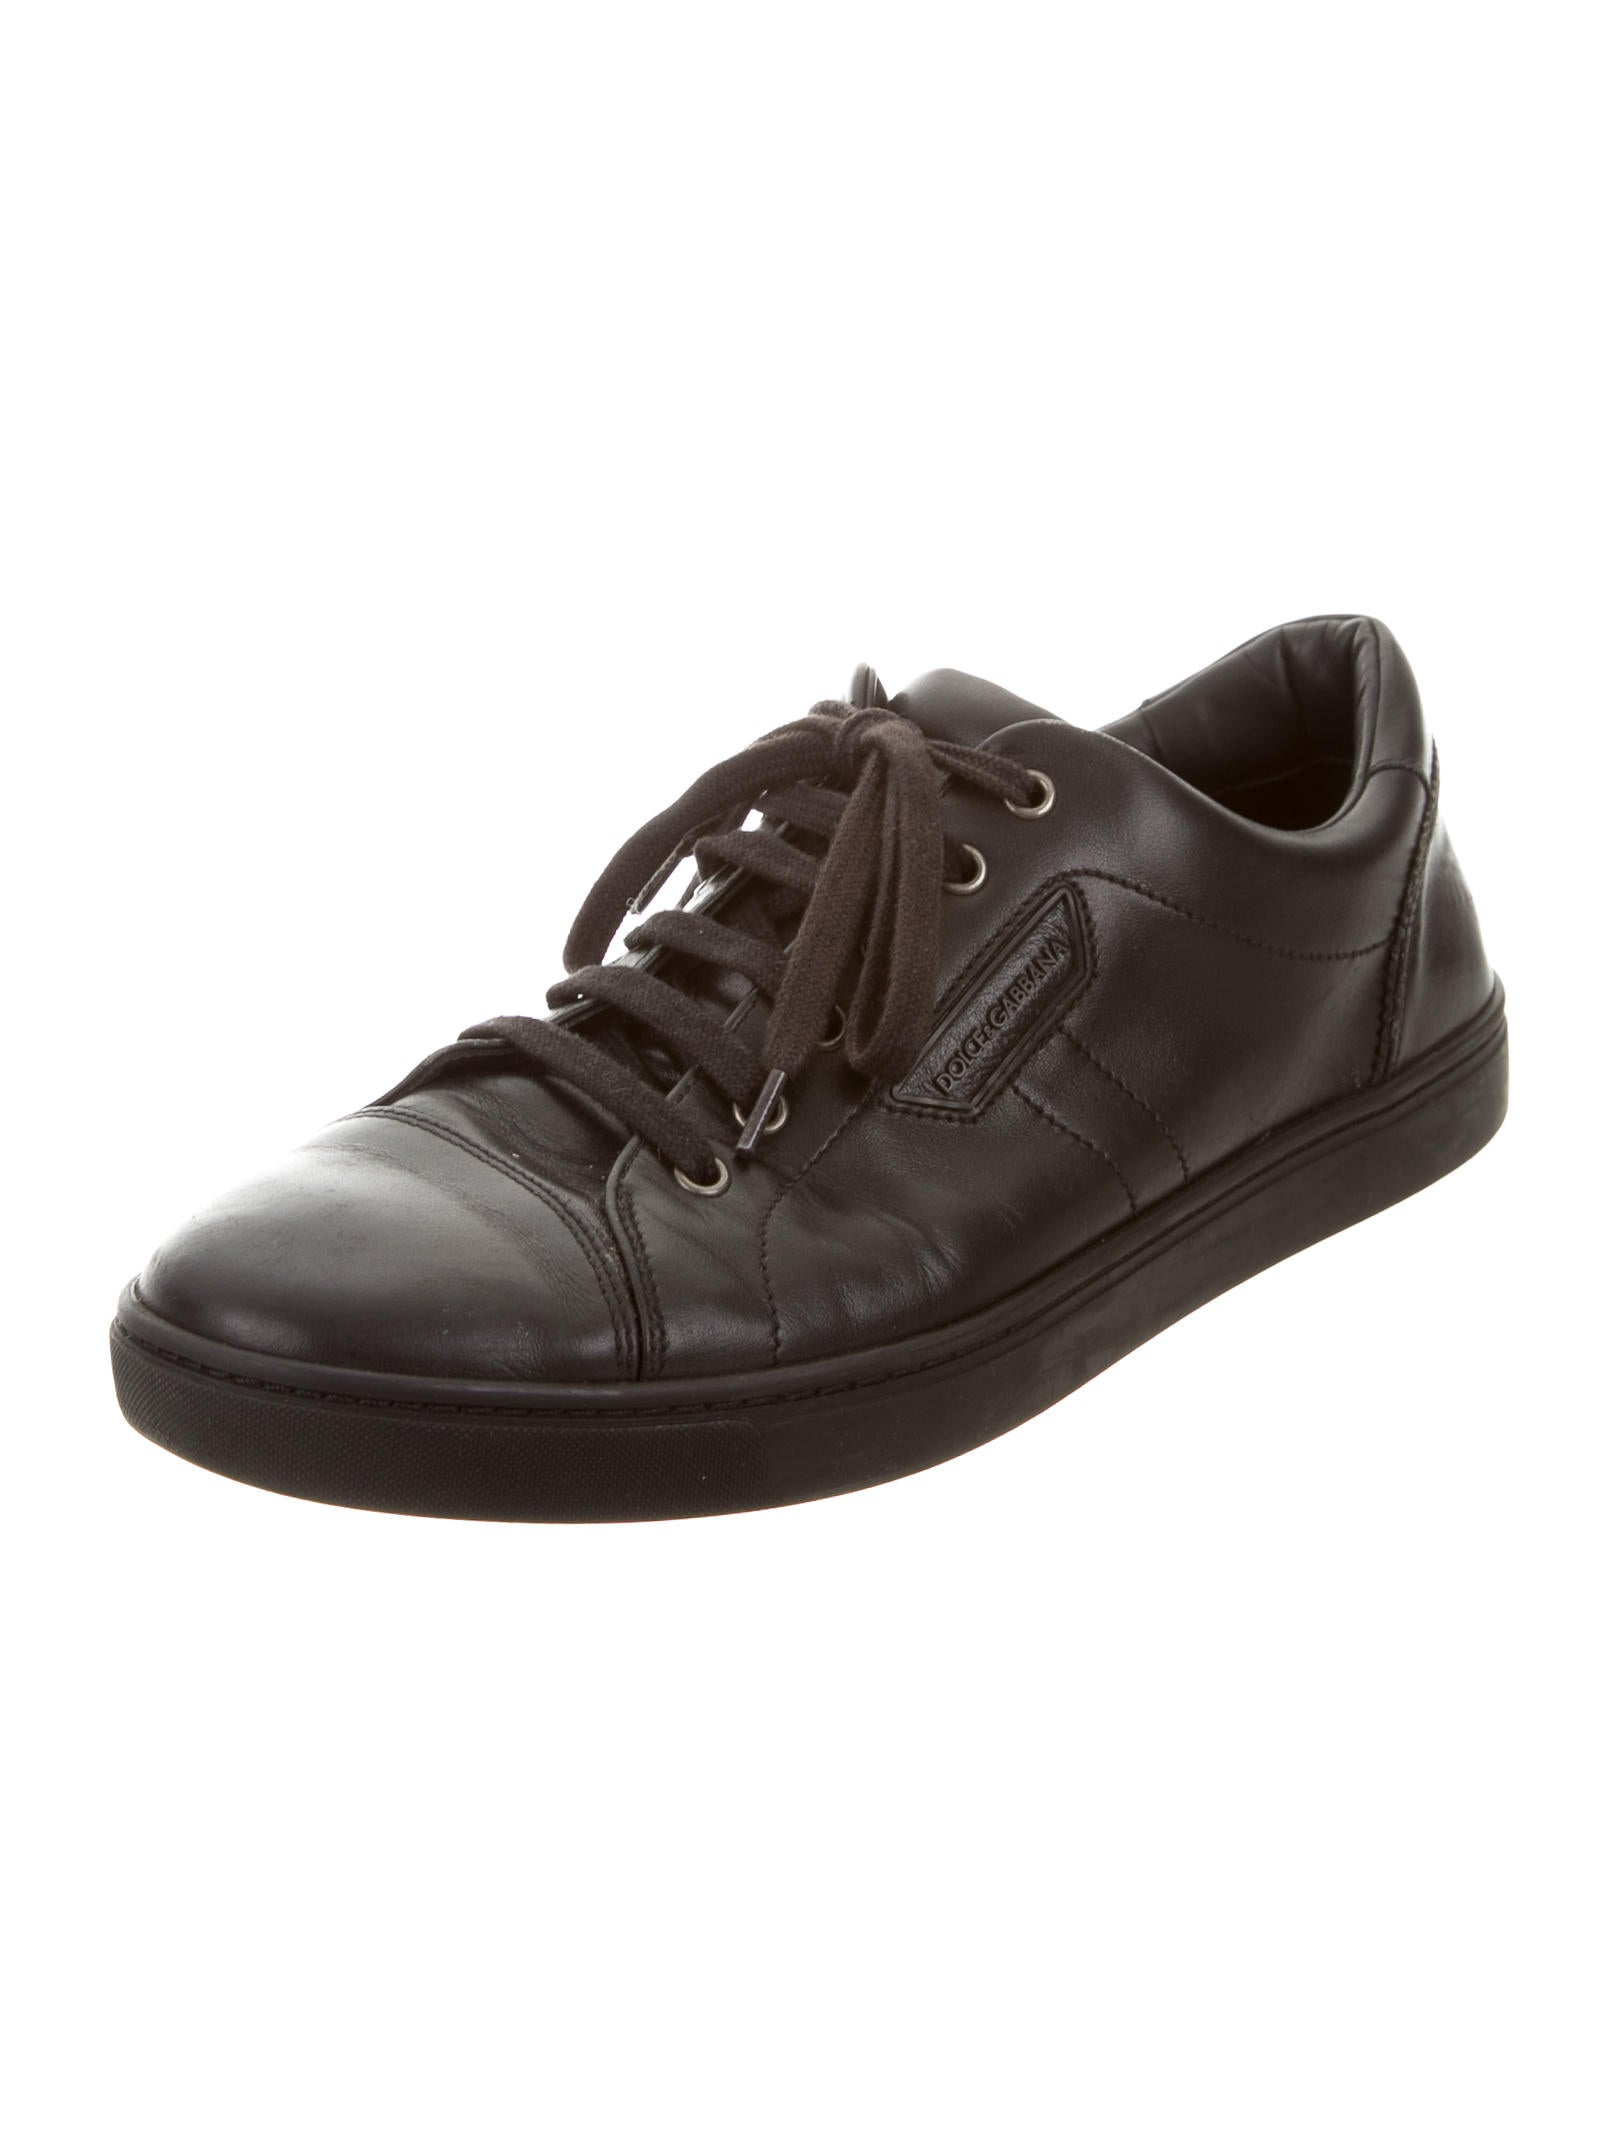 dolce gabbana leather low top sneakers shoes. Black Bedroom Furniture Sets. Home Design Ideas